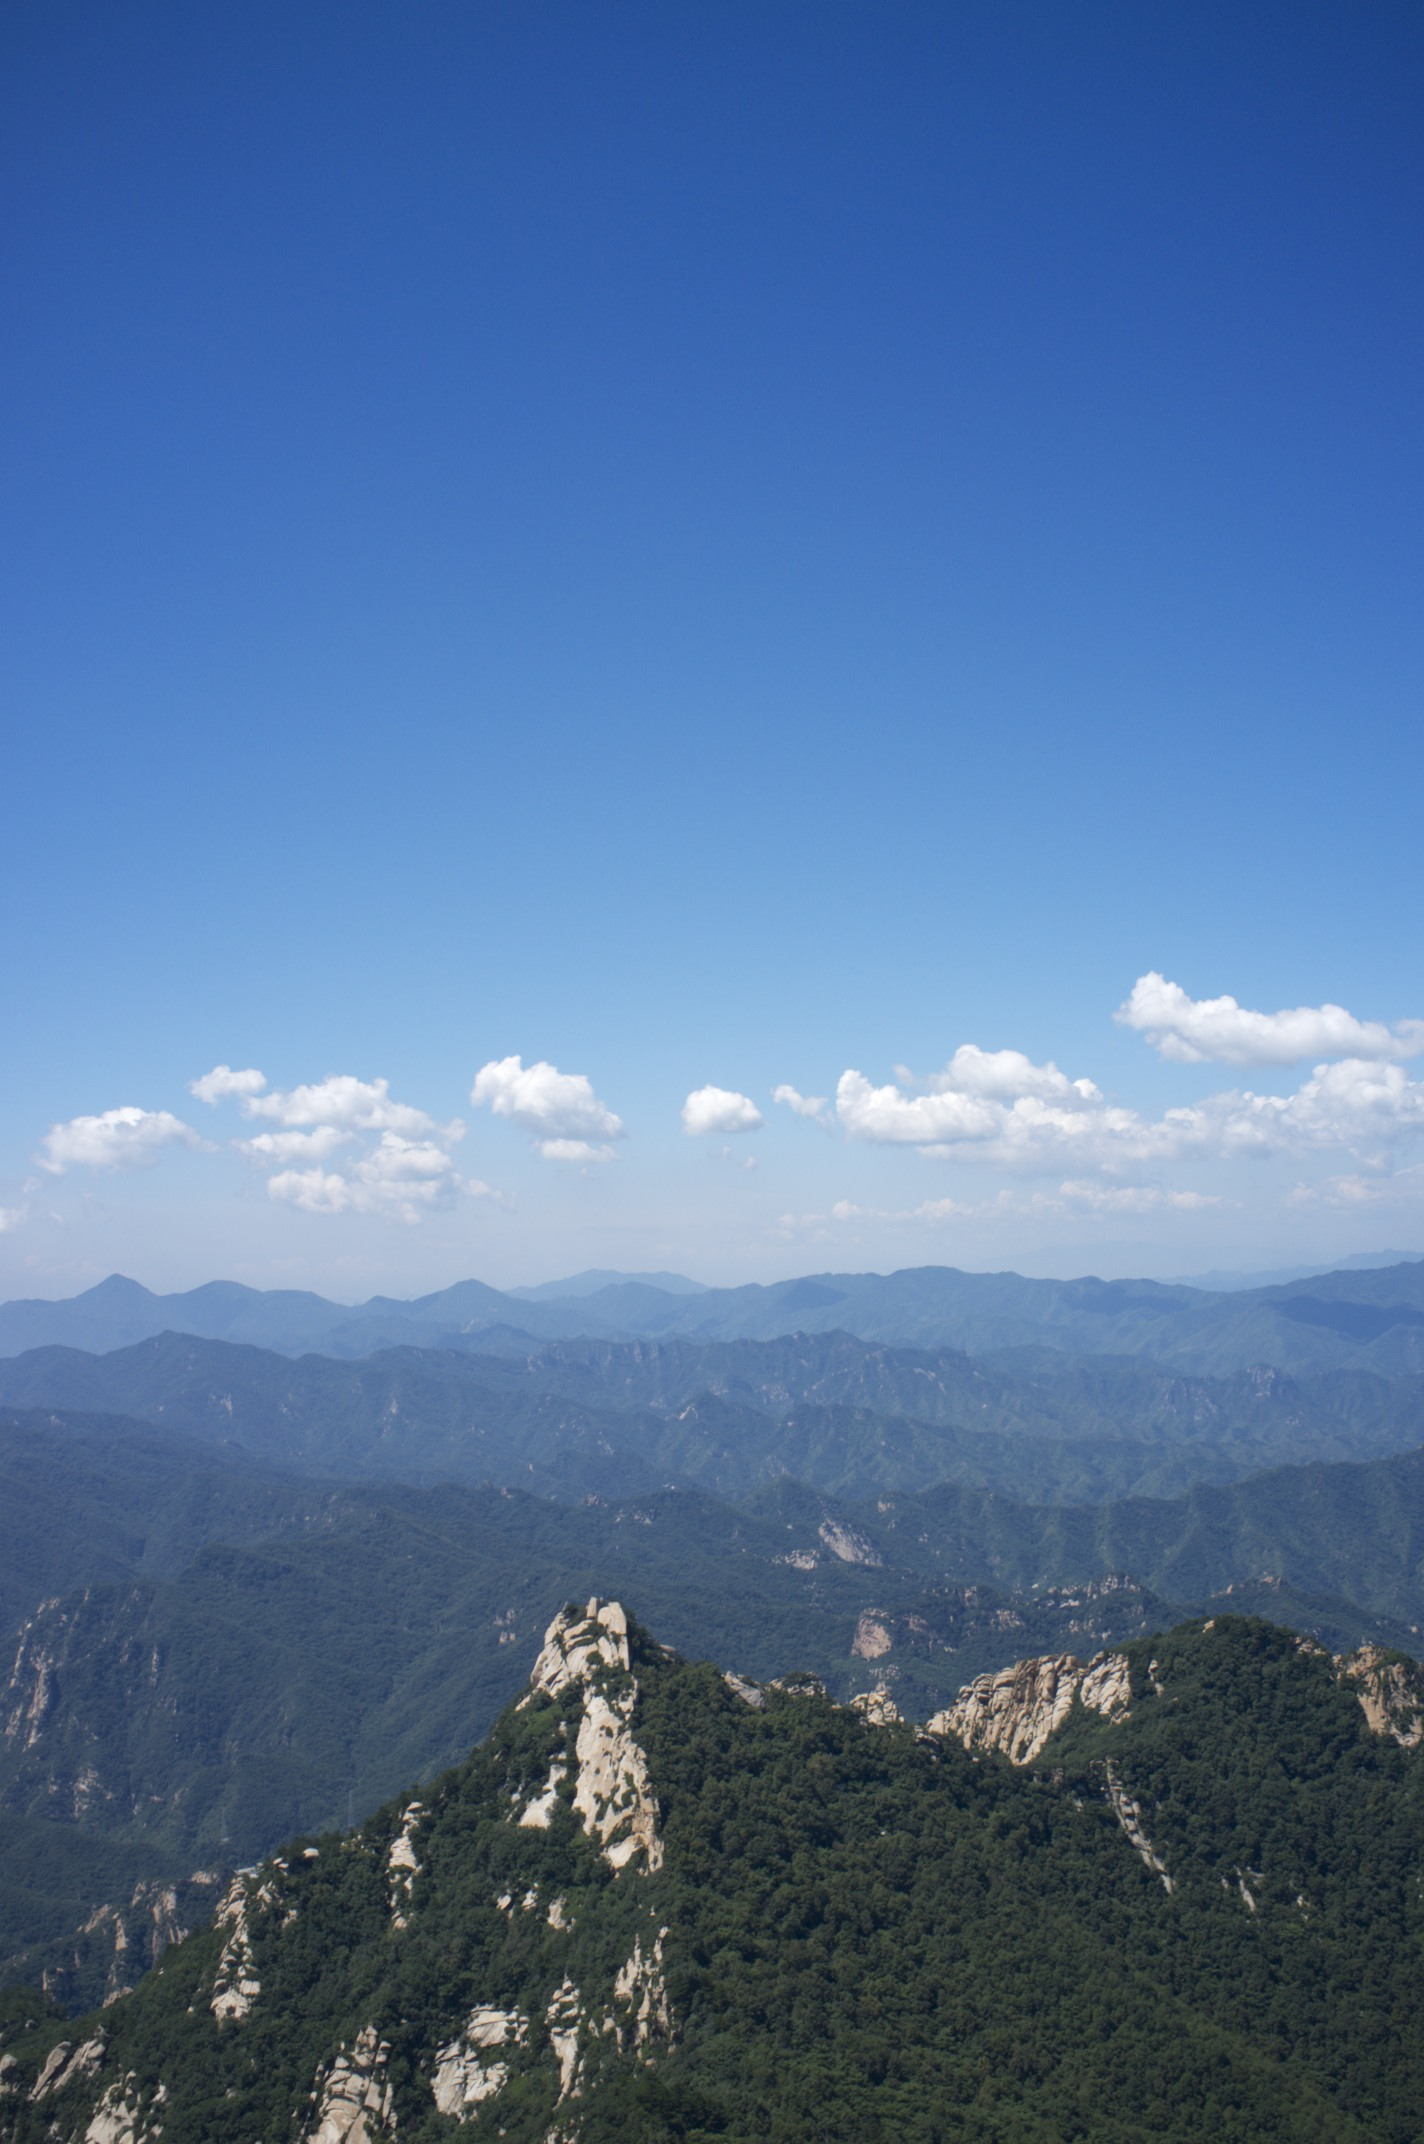 View form the Yun Meng Shan Peak over the mountains North of Beijing.